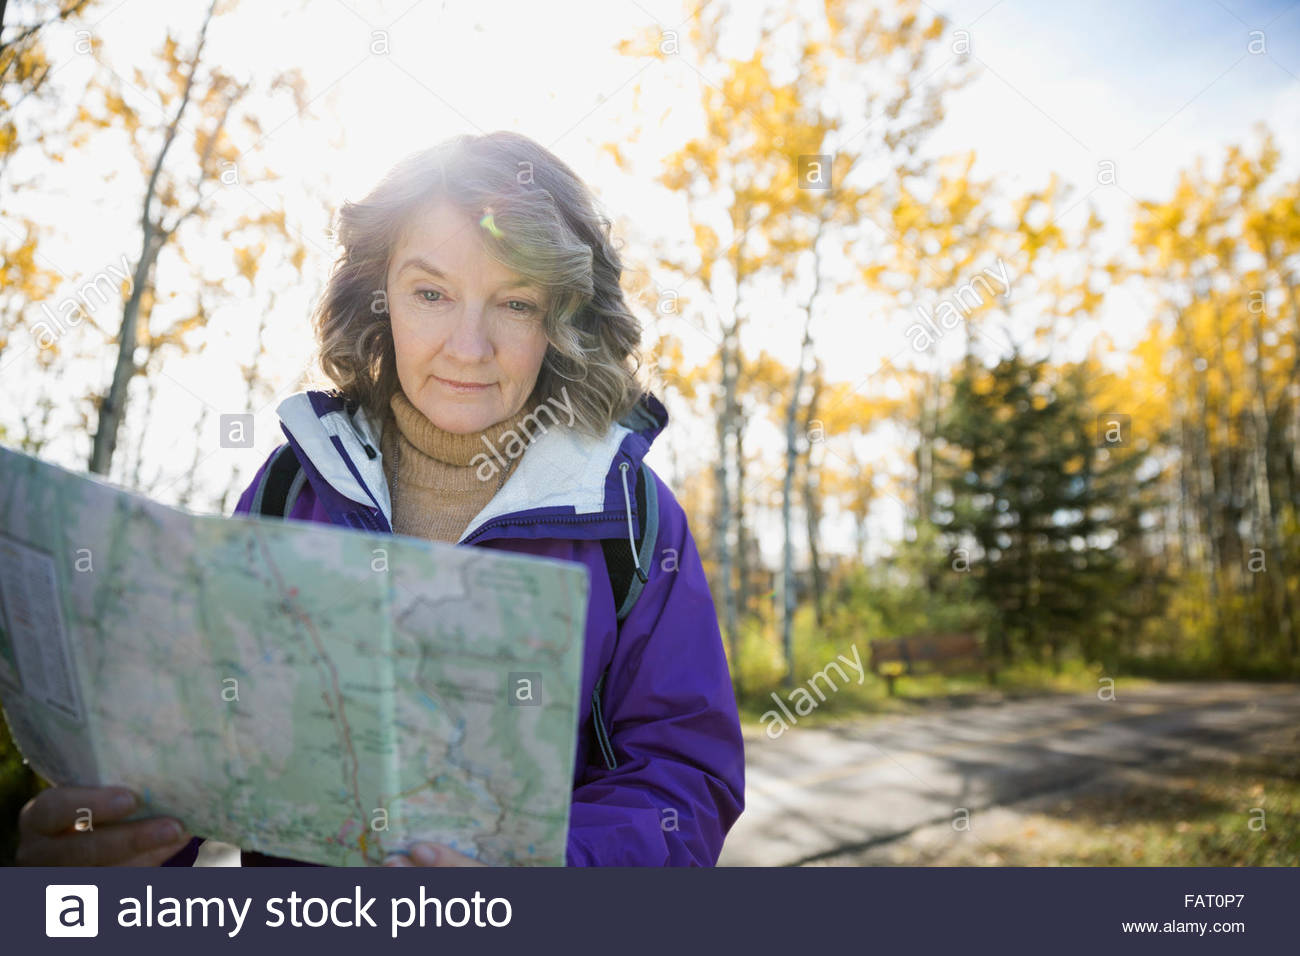 Woman hiking checking map in autumn woods - Stock Image